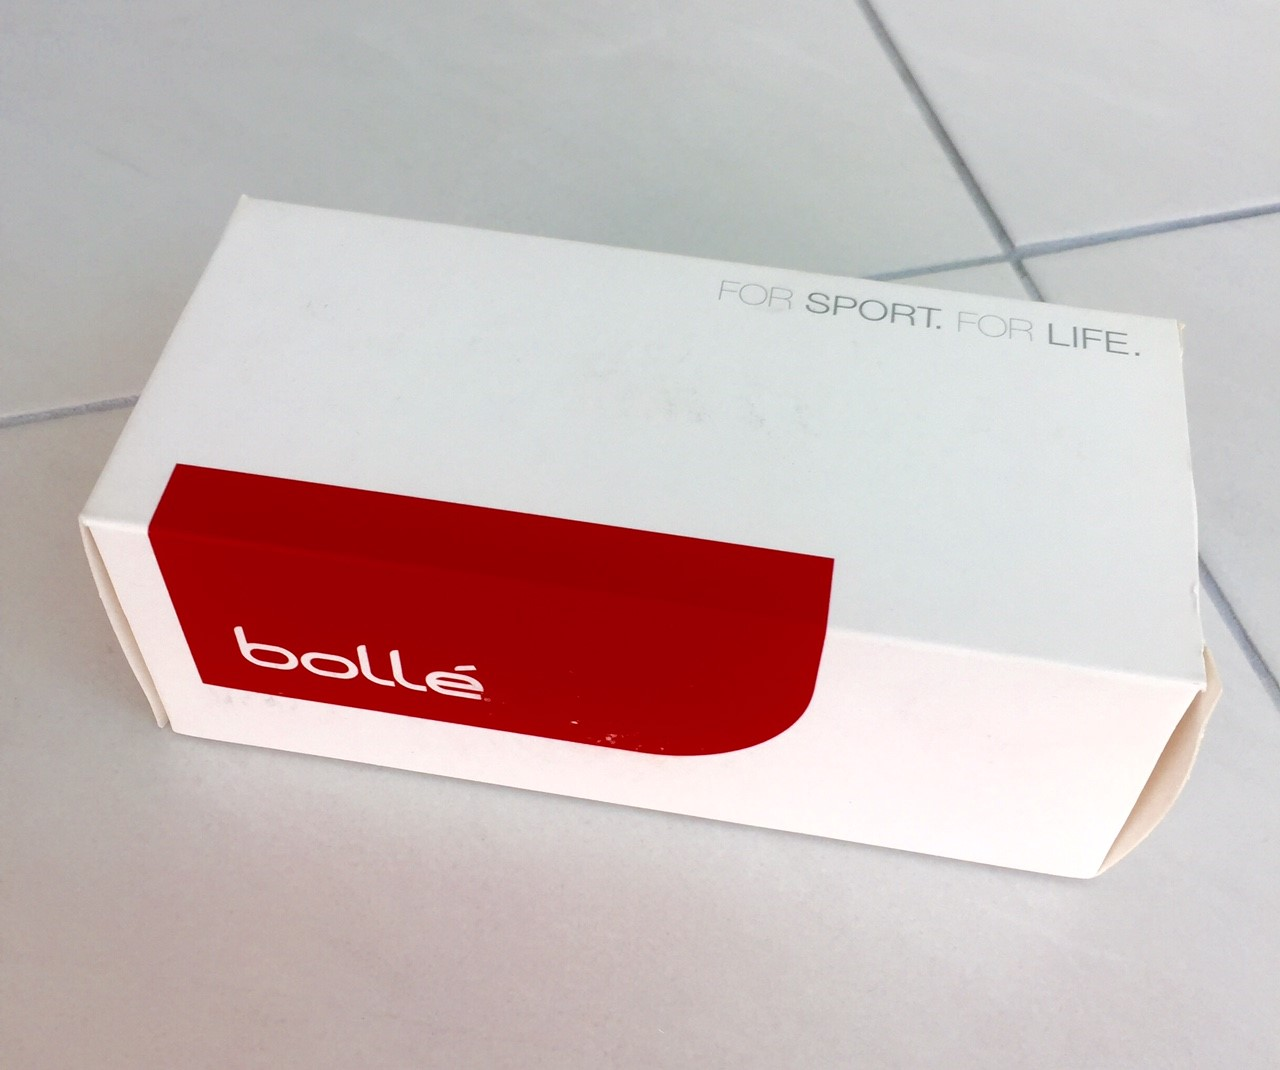 Thanks to Bolle I have some new sunglasses to test out on the water in the Spanish sun!